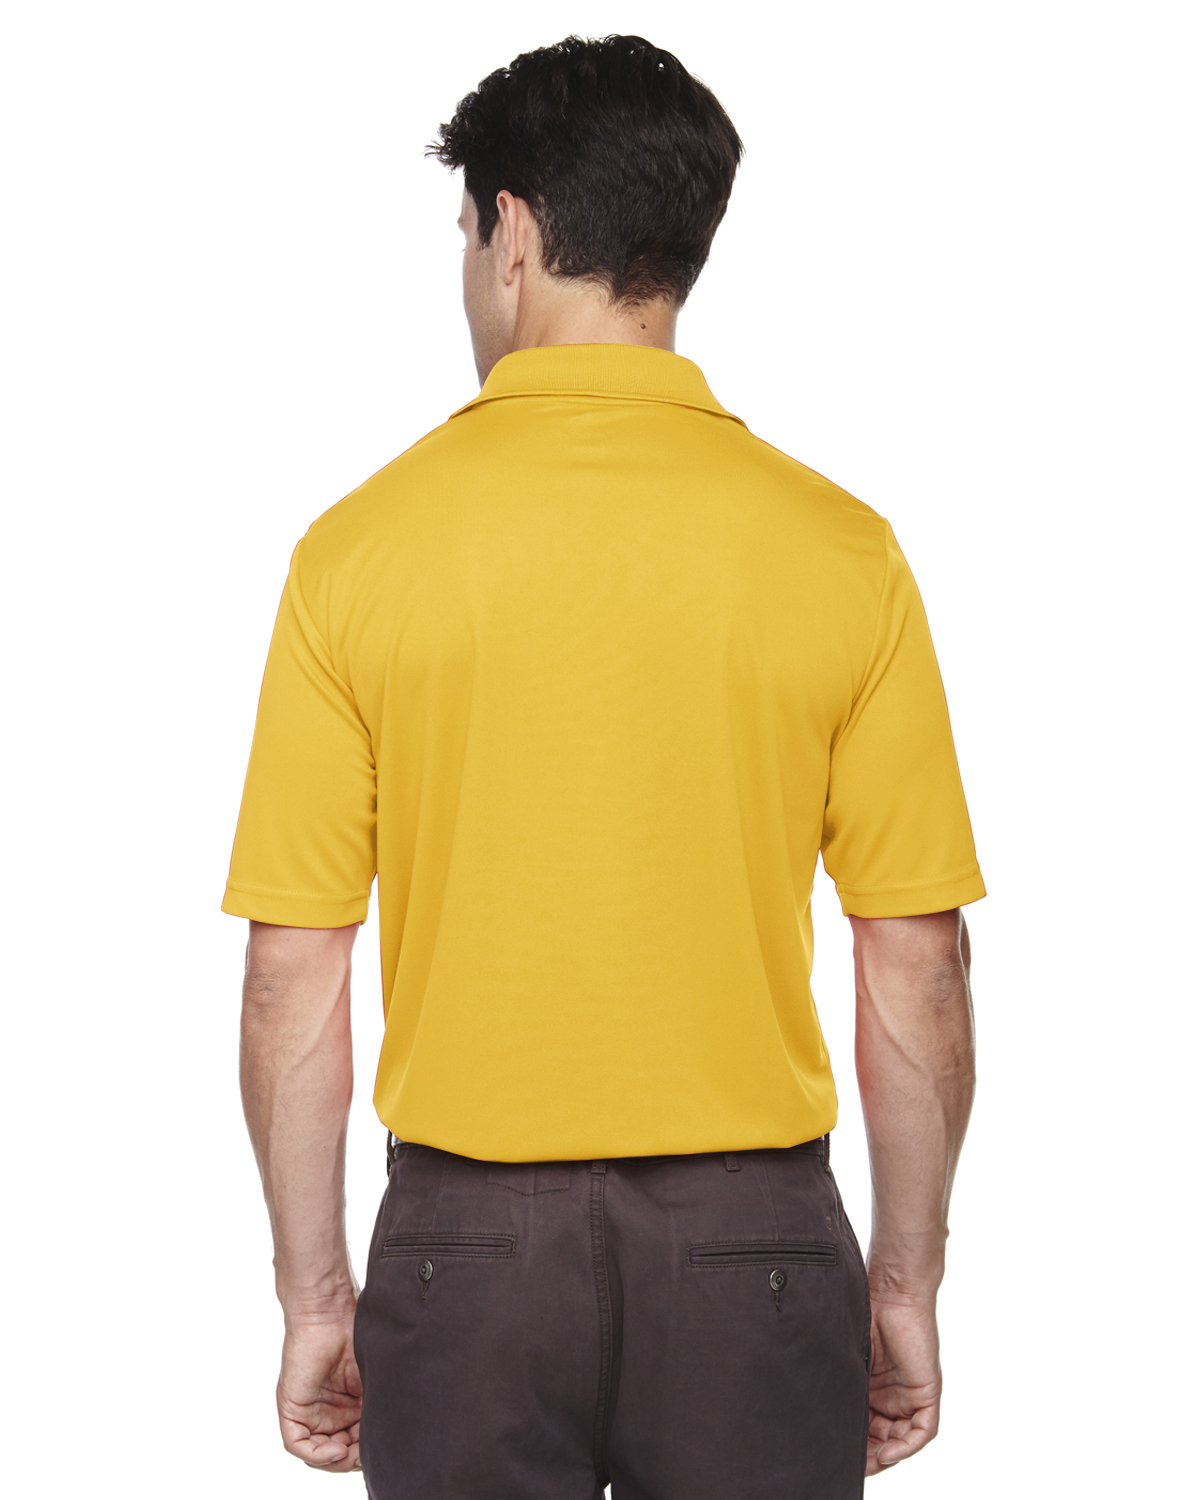 New core 365 men 39 s 100 polyester performance piqu big 2x for Mens 5x polo shirts